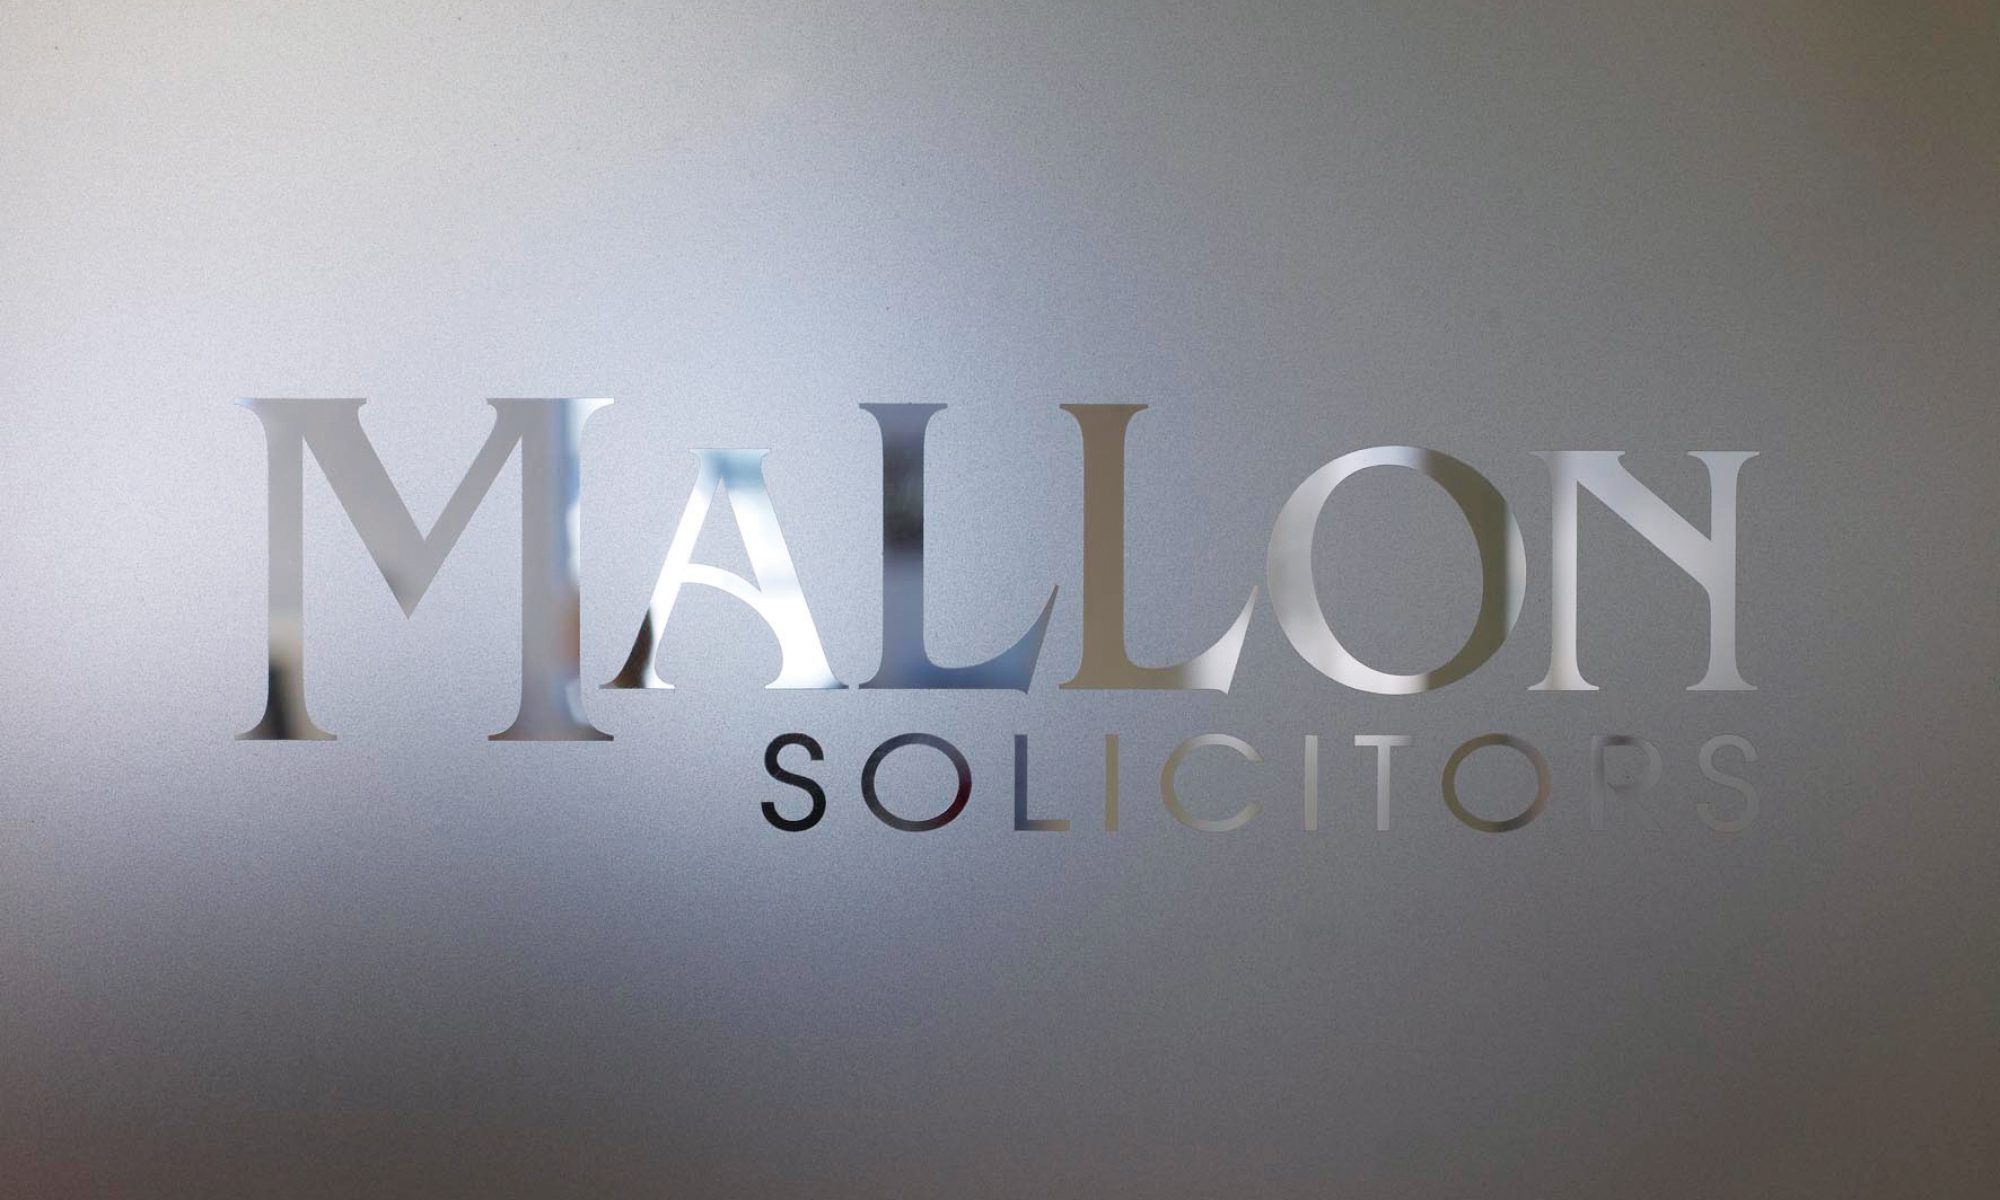 Mallon Solicitors